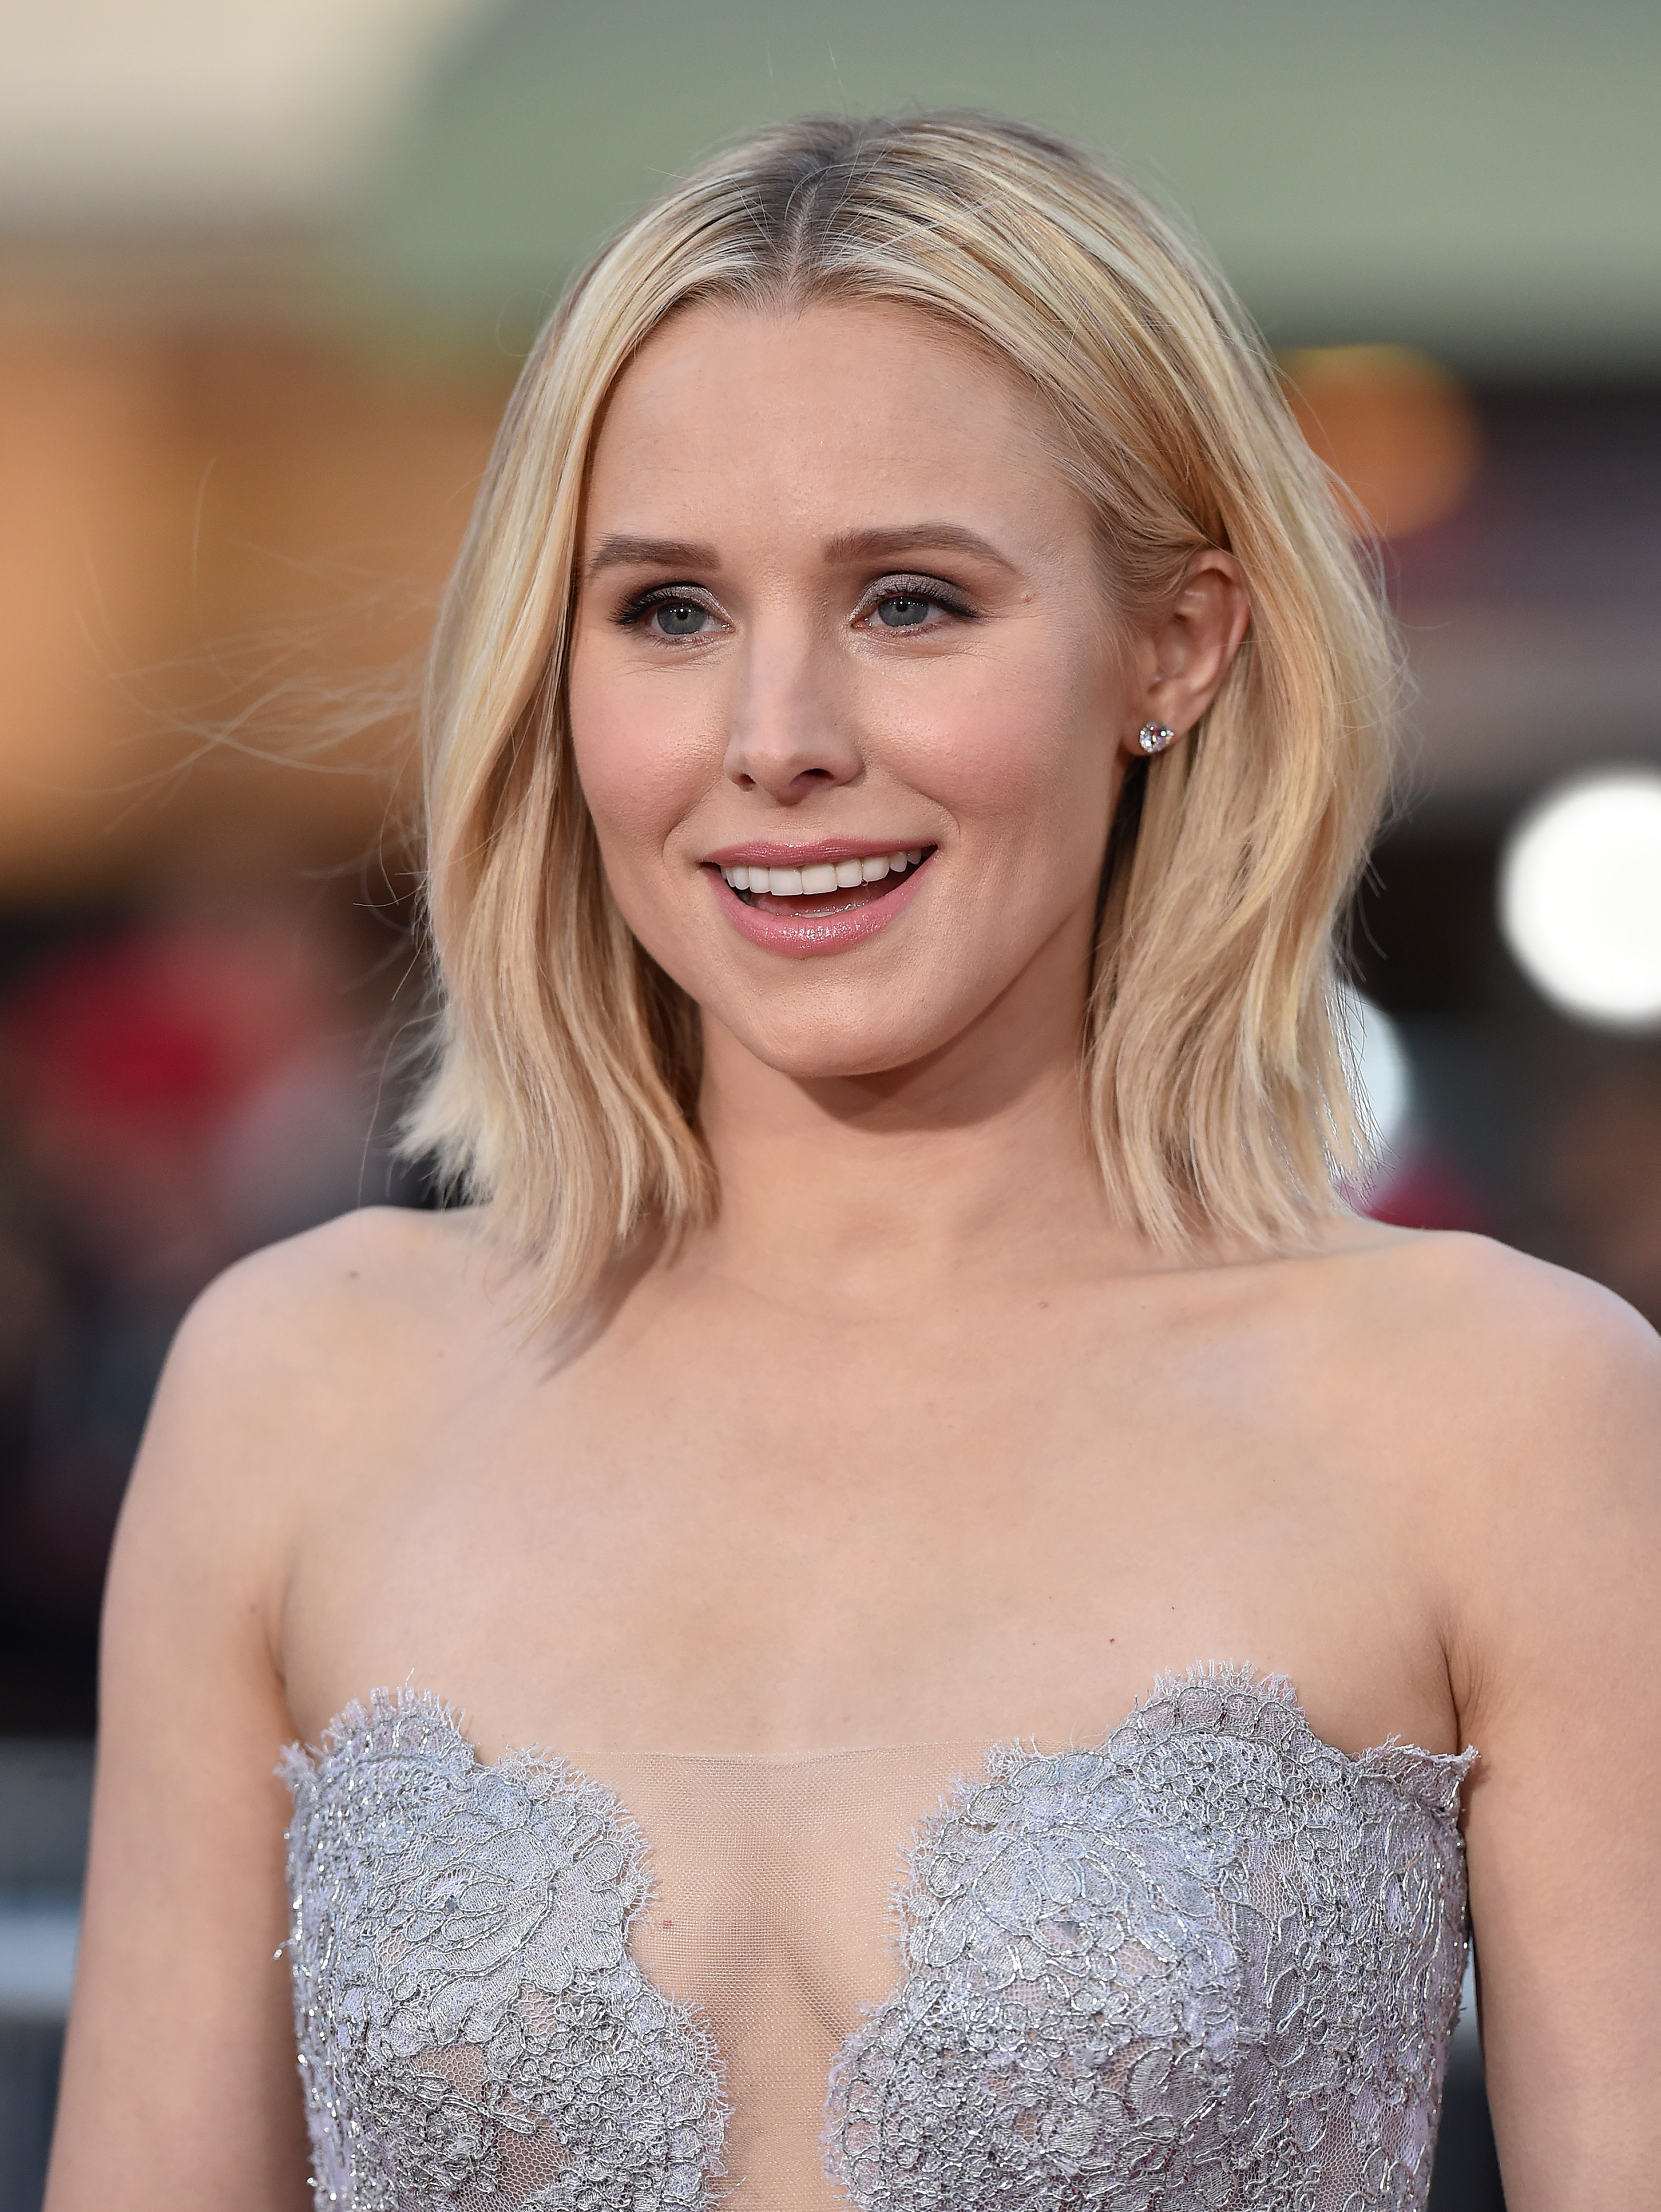 Kristen Bell at the premiere of USA Pictures'  The Boss  in Westwood, Calif. on March 28, 2016.